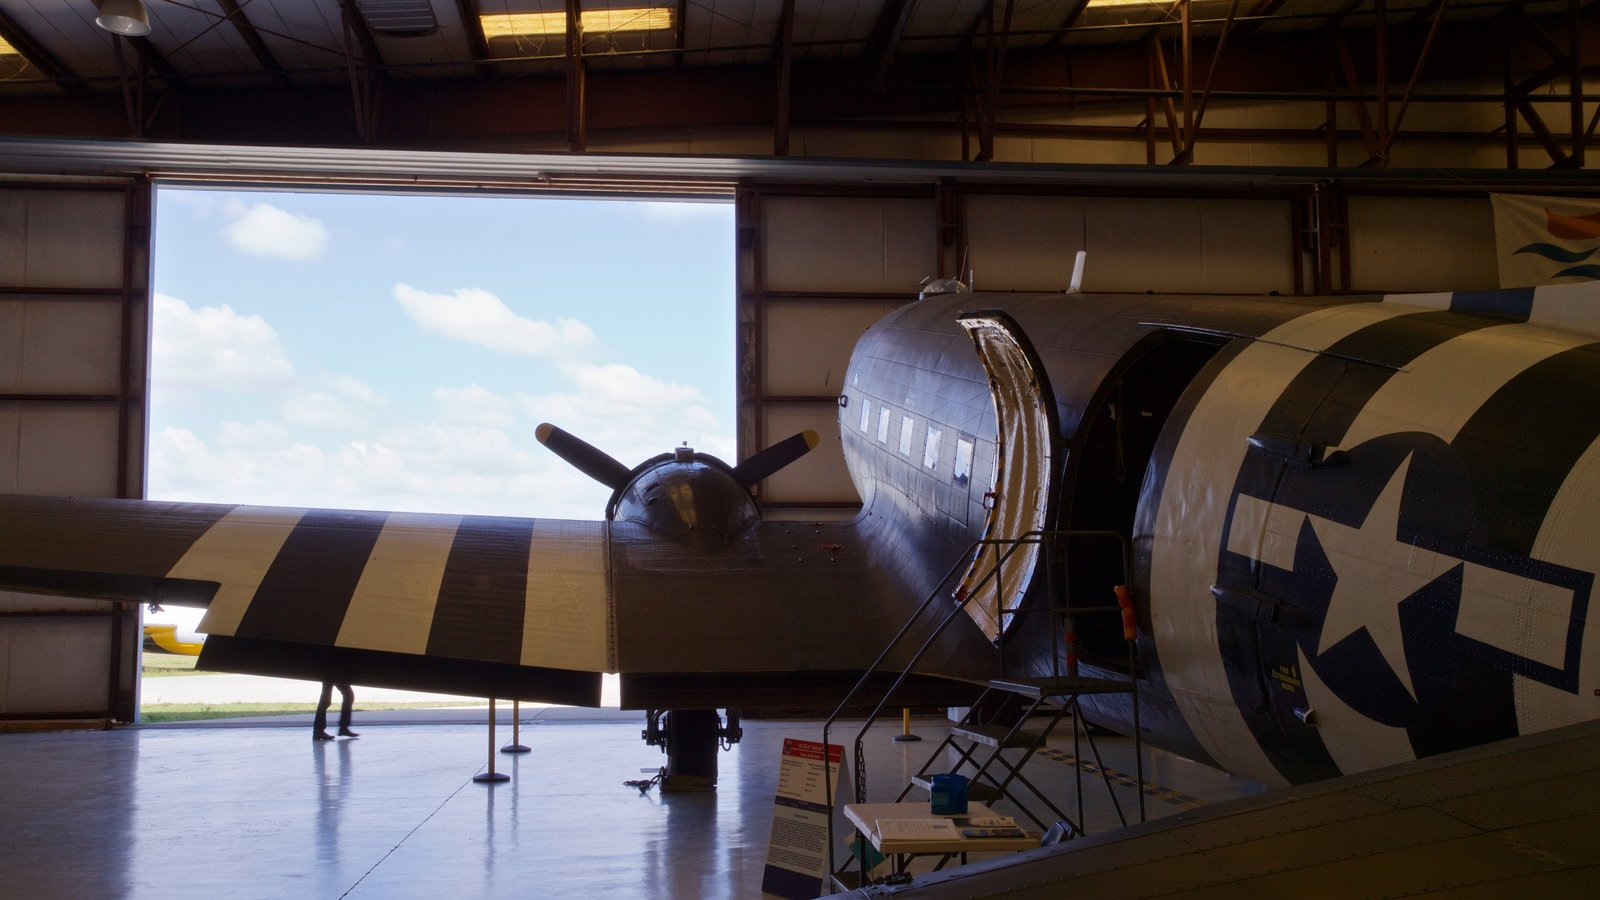 Valiant Air Command Warbird Museum showing interior views and military items